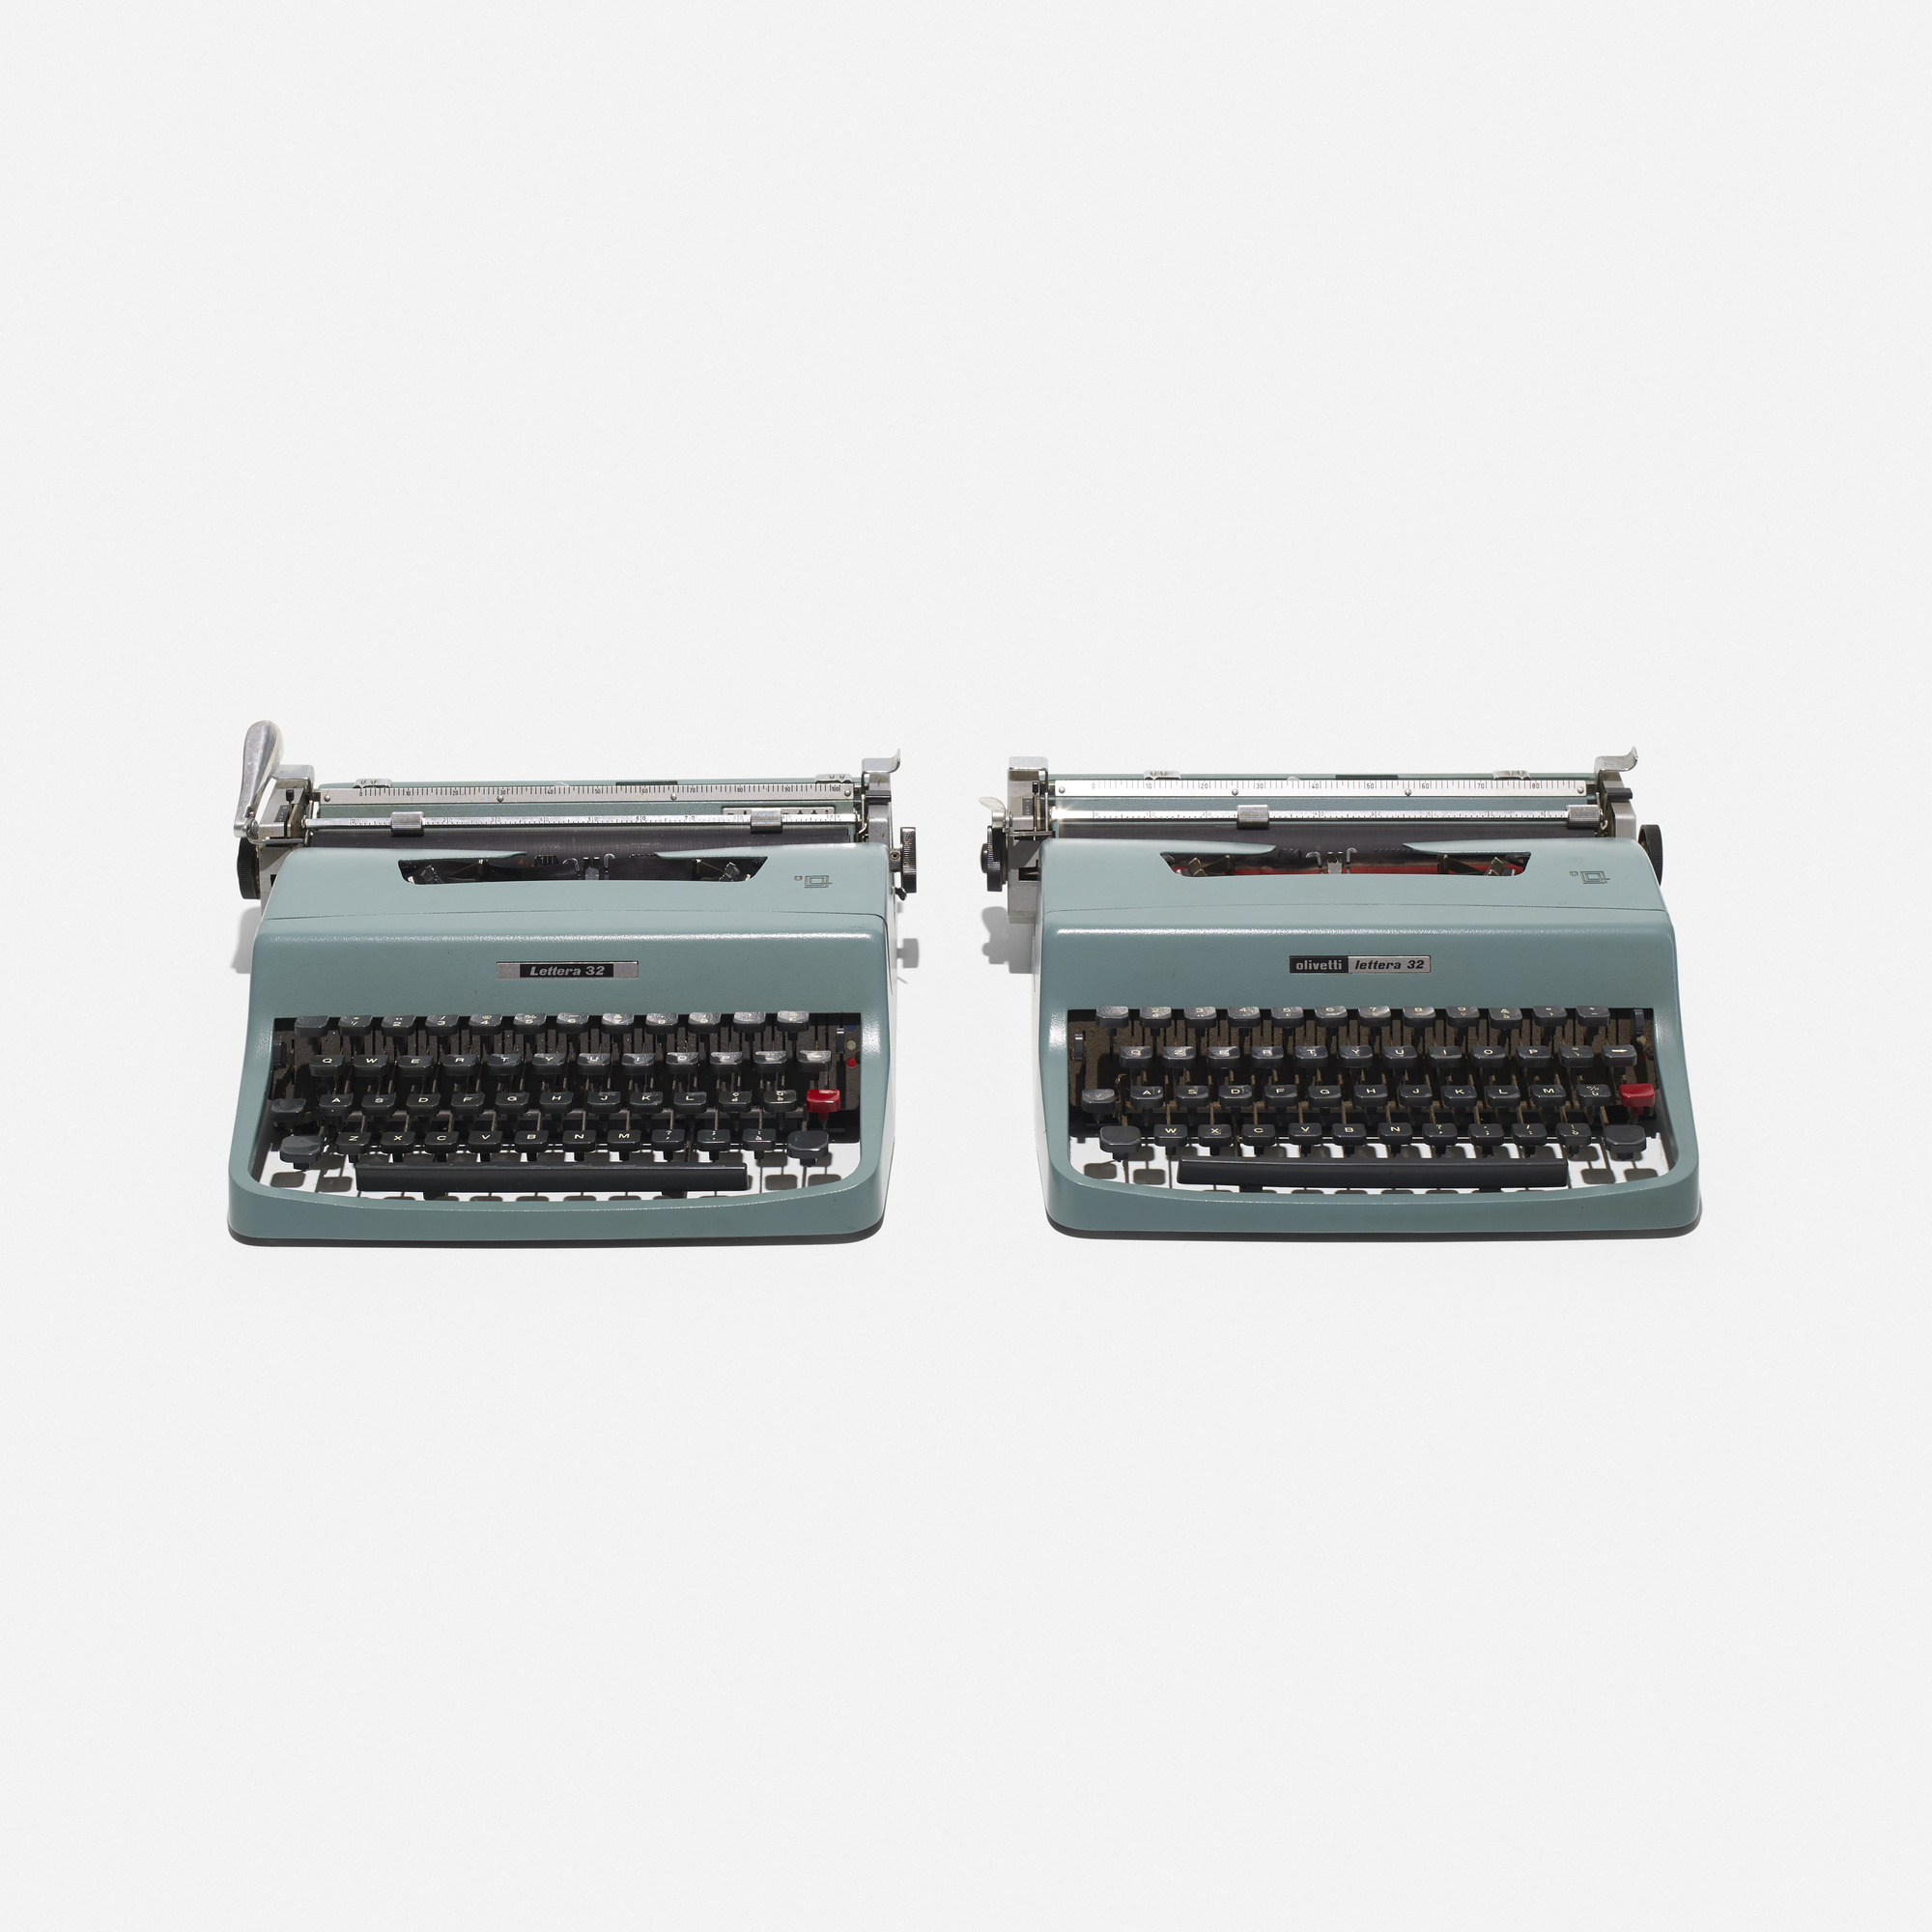 182: Marcello Nizzoli / Lettera 32 typewriters, pair (1 of 2)